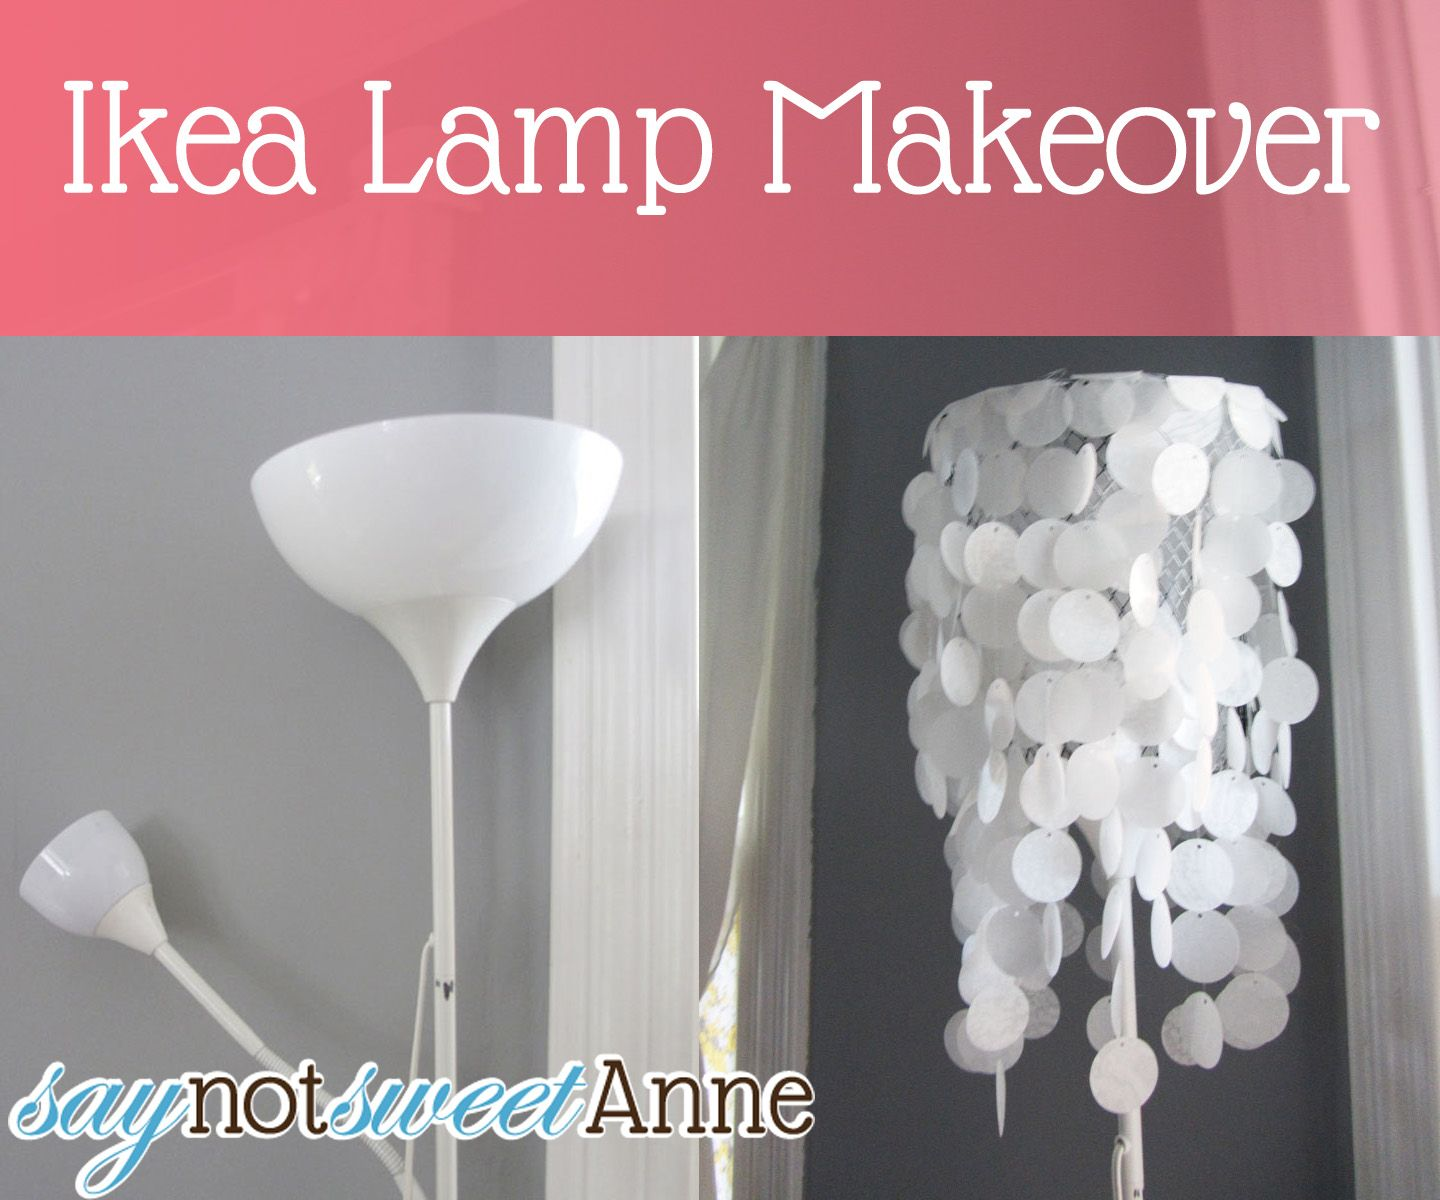 Ikea Lamp Makeover Ikea Lamp Lamp Makeover Ikea Floor Lamp